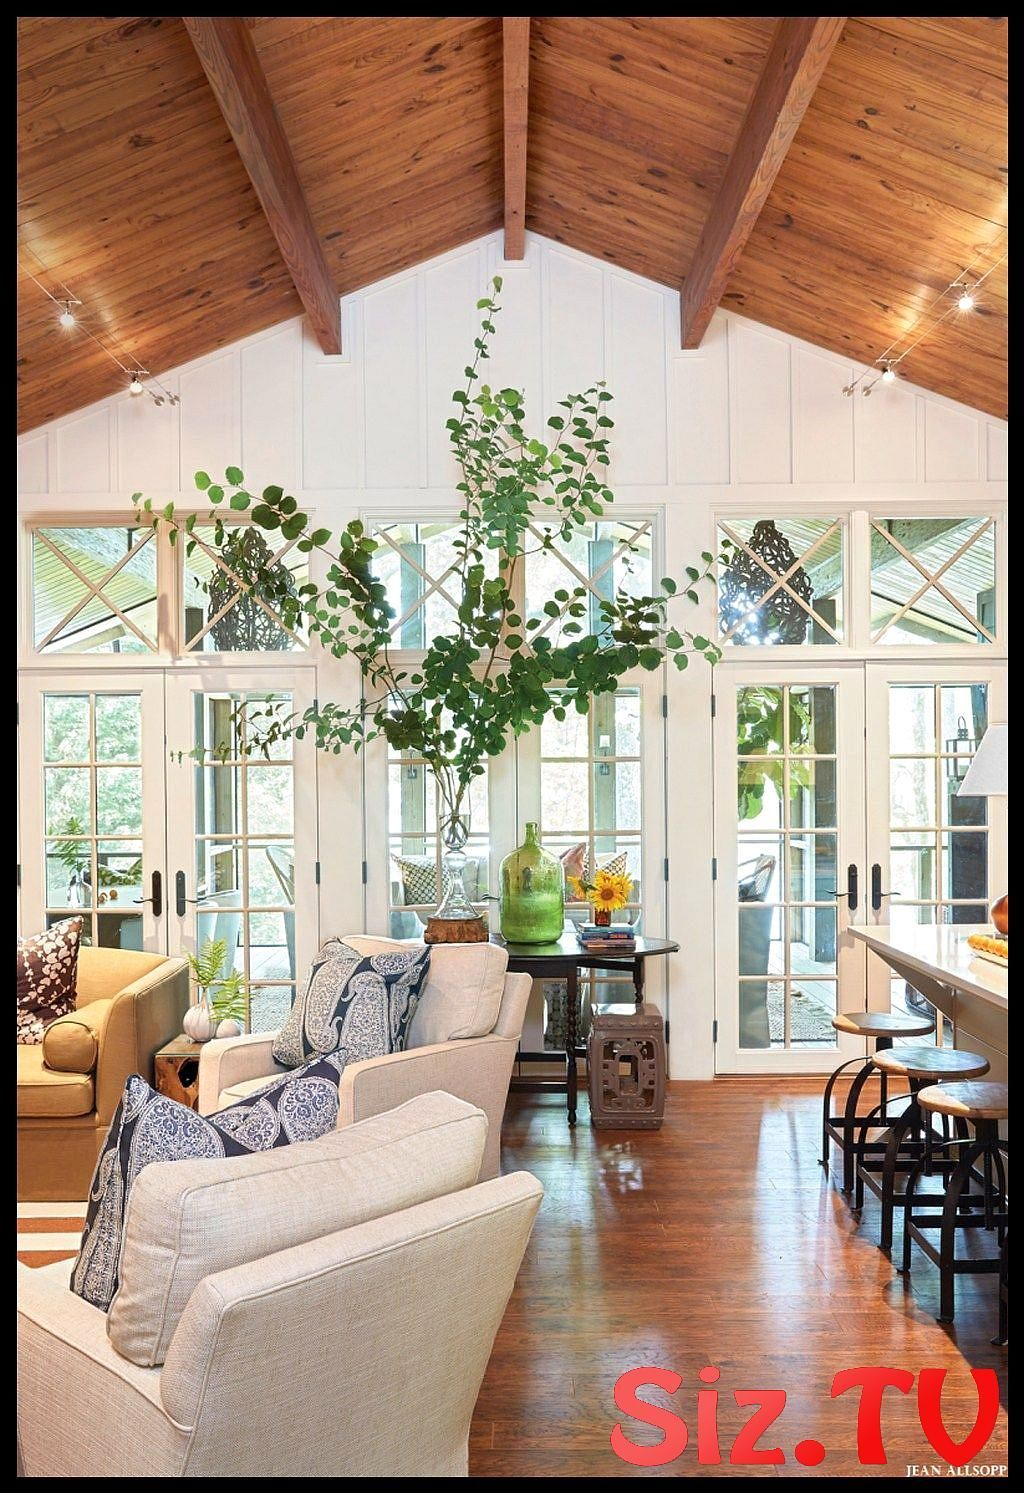 46 The Best Vaulted Ceiling Living Room Design Ideas 46 The Best Vaulted Ceiling Living Room Design Ideas Regardless Of Whether Your Living Room Is A 21 Foot Length With A Huge Picture Window Toward One Side Or You Live In A Minor Flat And The Living Room Is Bijou Without A Doubt There Are Living Room Decor #ceilinglivingroomvaulted #best #vaulted #ceiling #living #room #design #ideas #regardless #whether #your #foot #length #with #huge #picture #window #toward #side #live #minor #flat #bijou #v #vaultedceilingdecor